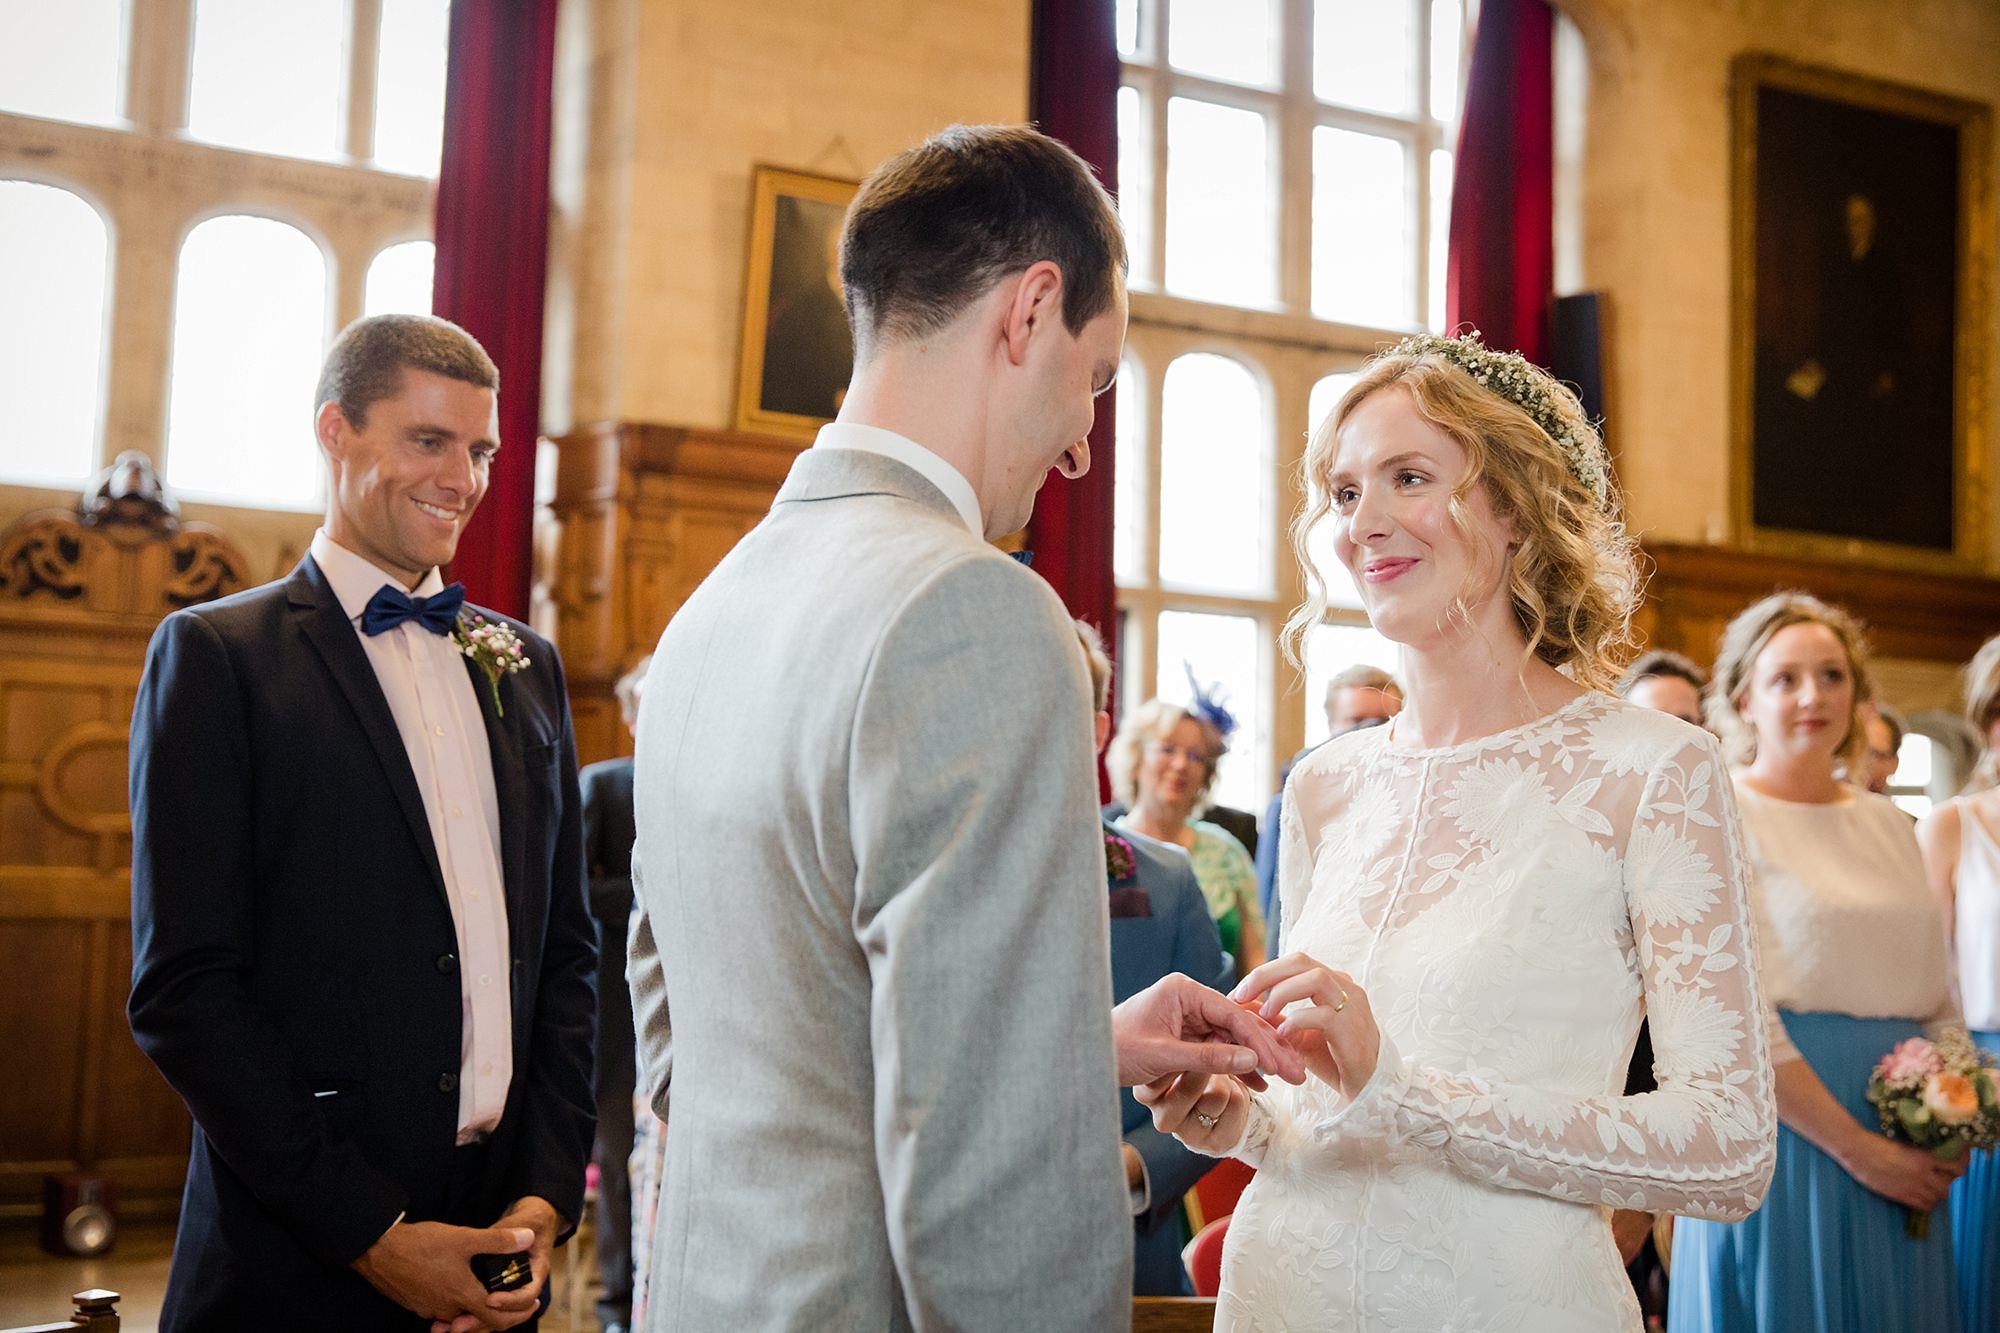 Isis Farmhouse Oxford Wedding portrait of groom and bride exchanging rings